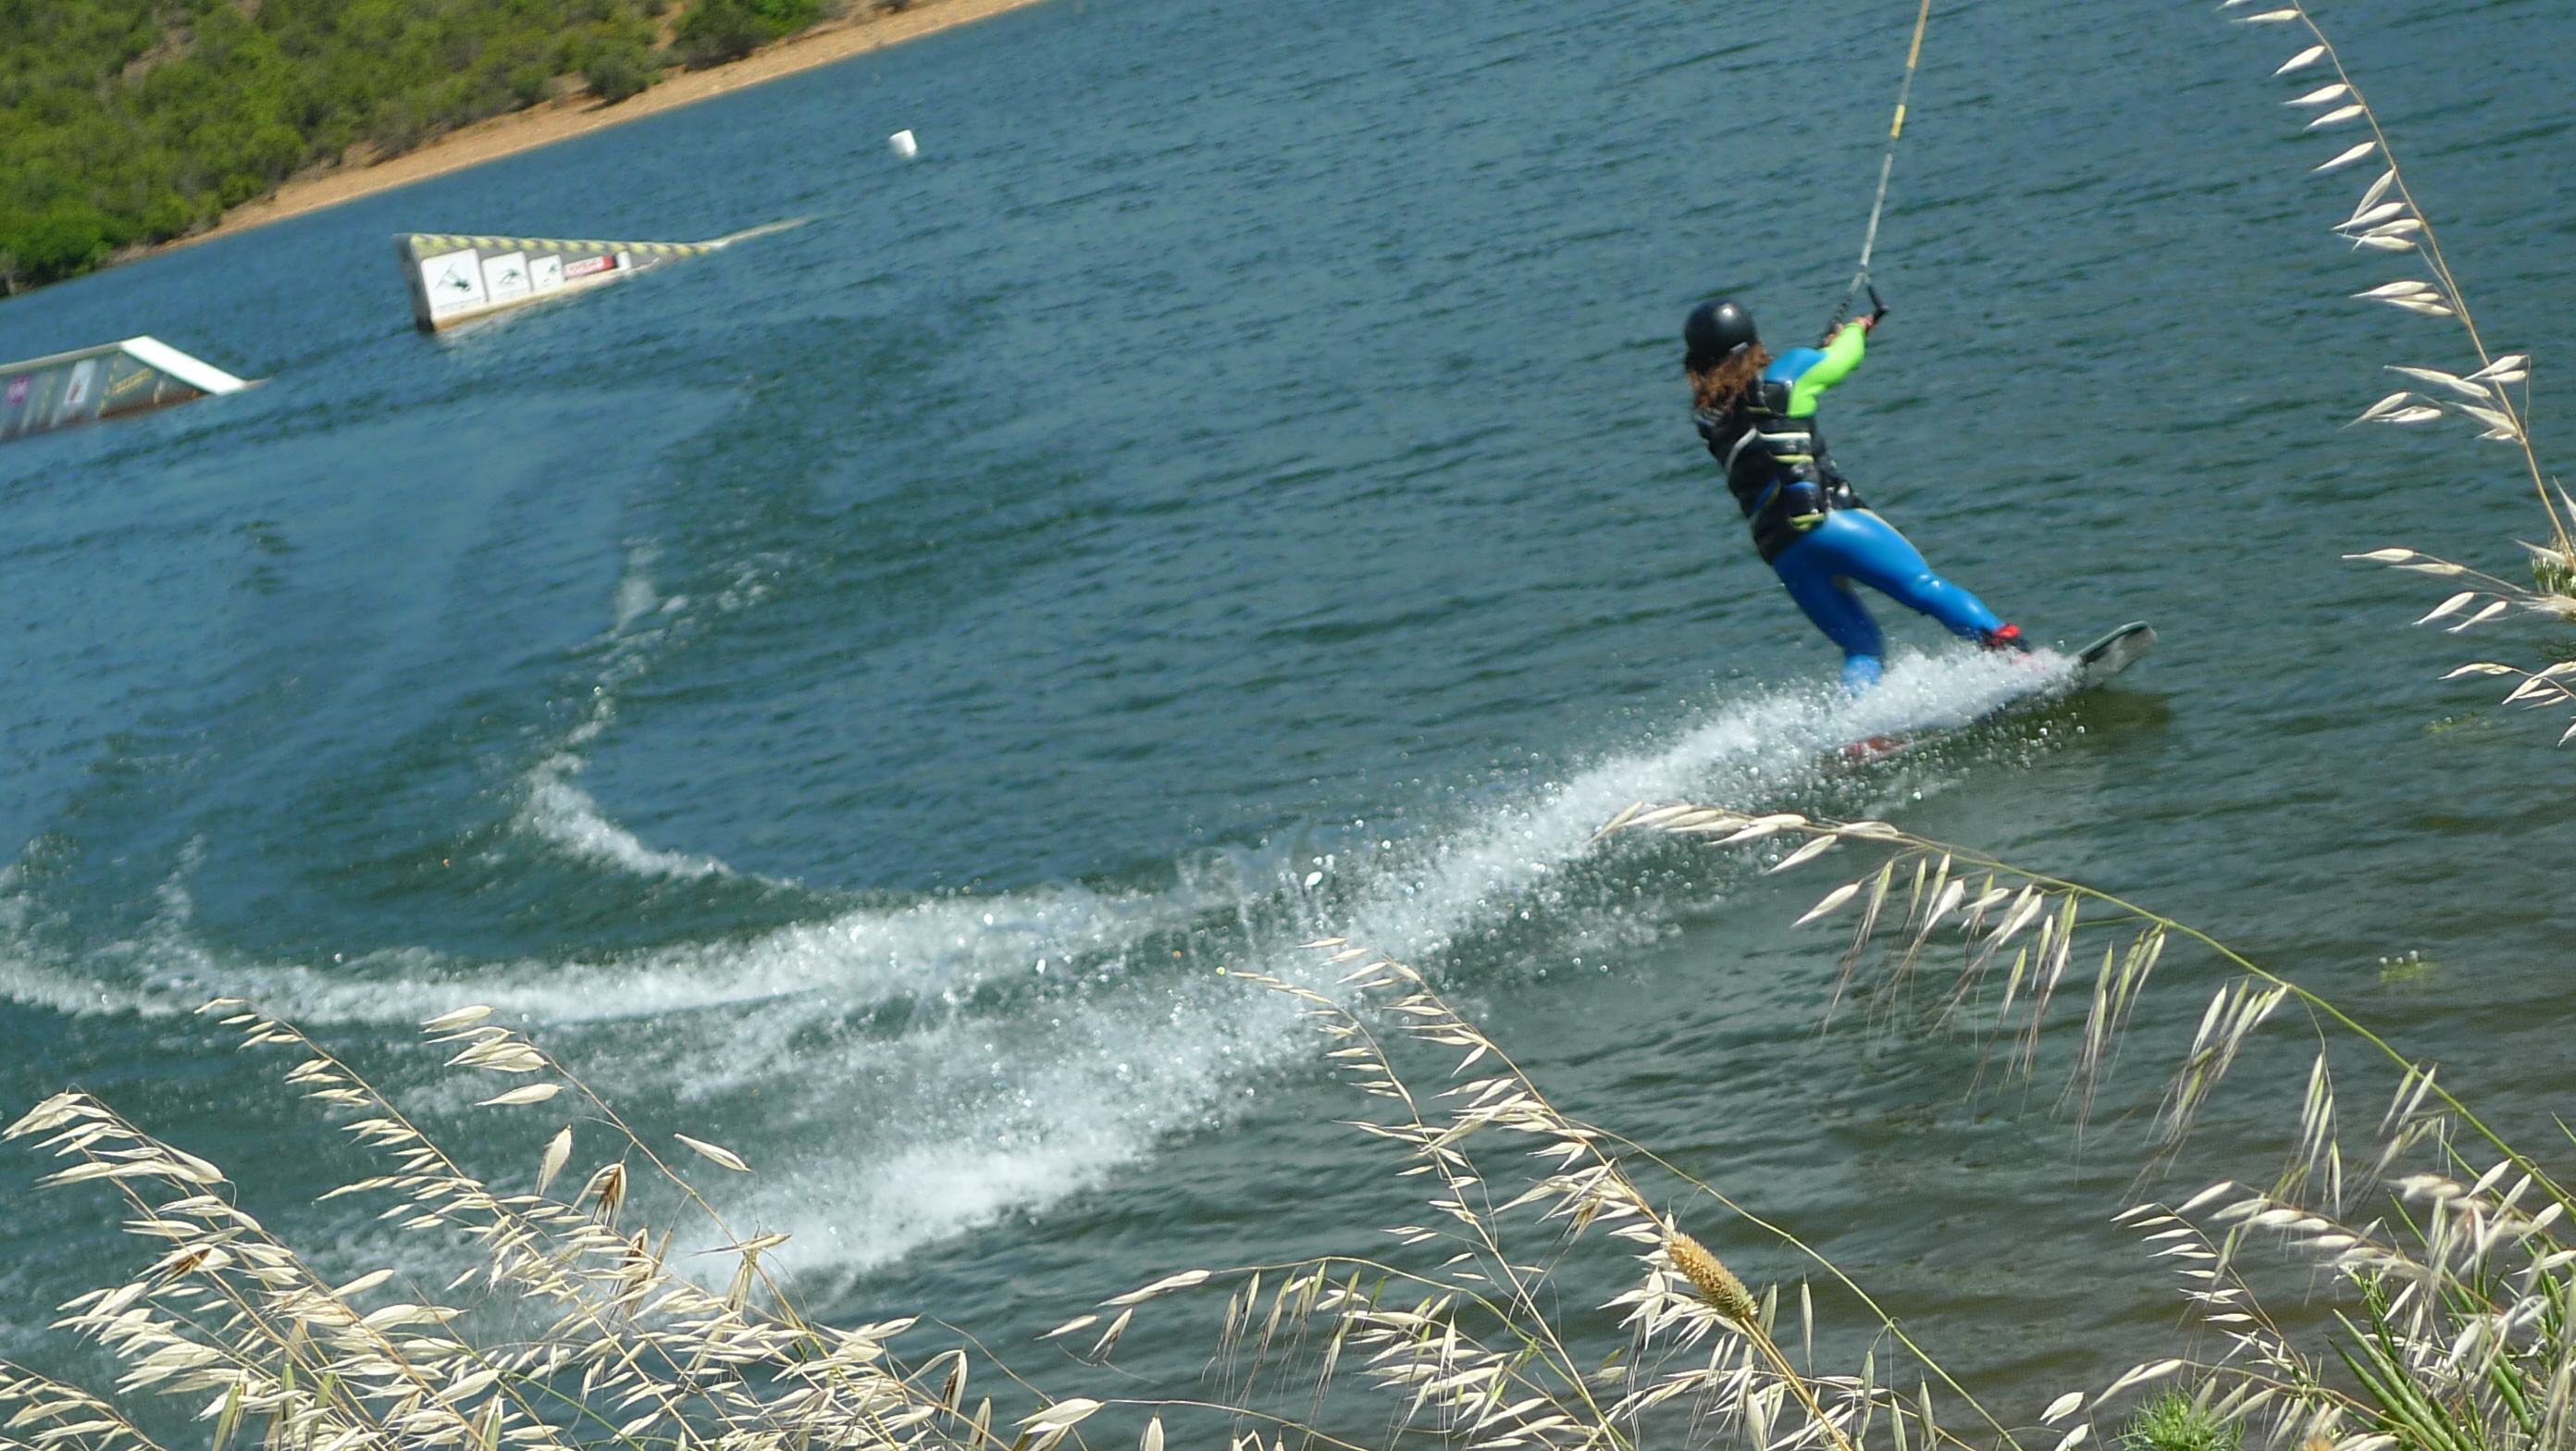 Wake-boarding at Lago di Medau Zirmilis